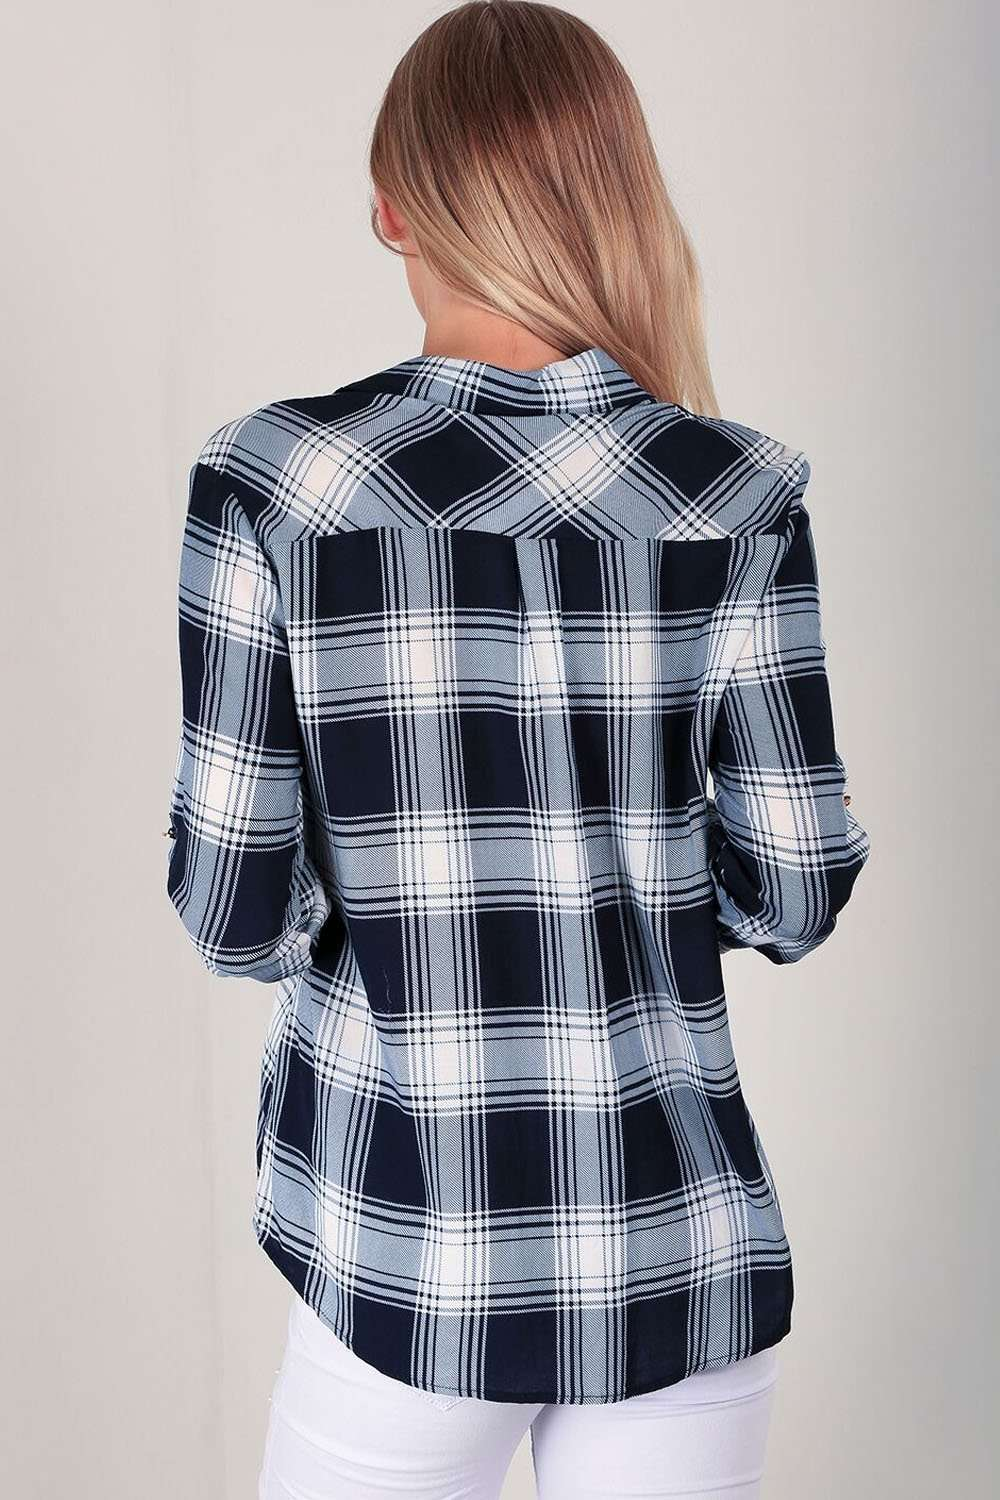 Ceris Badged Blue Tartan Shirt - bejealous-com